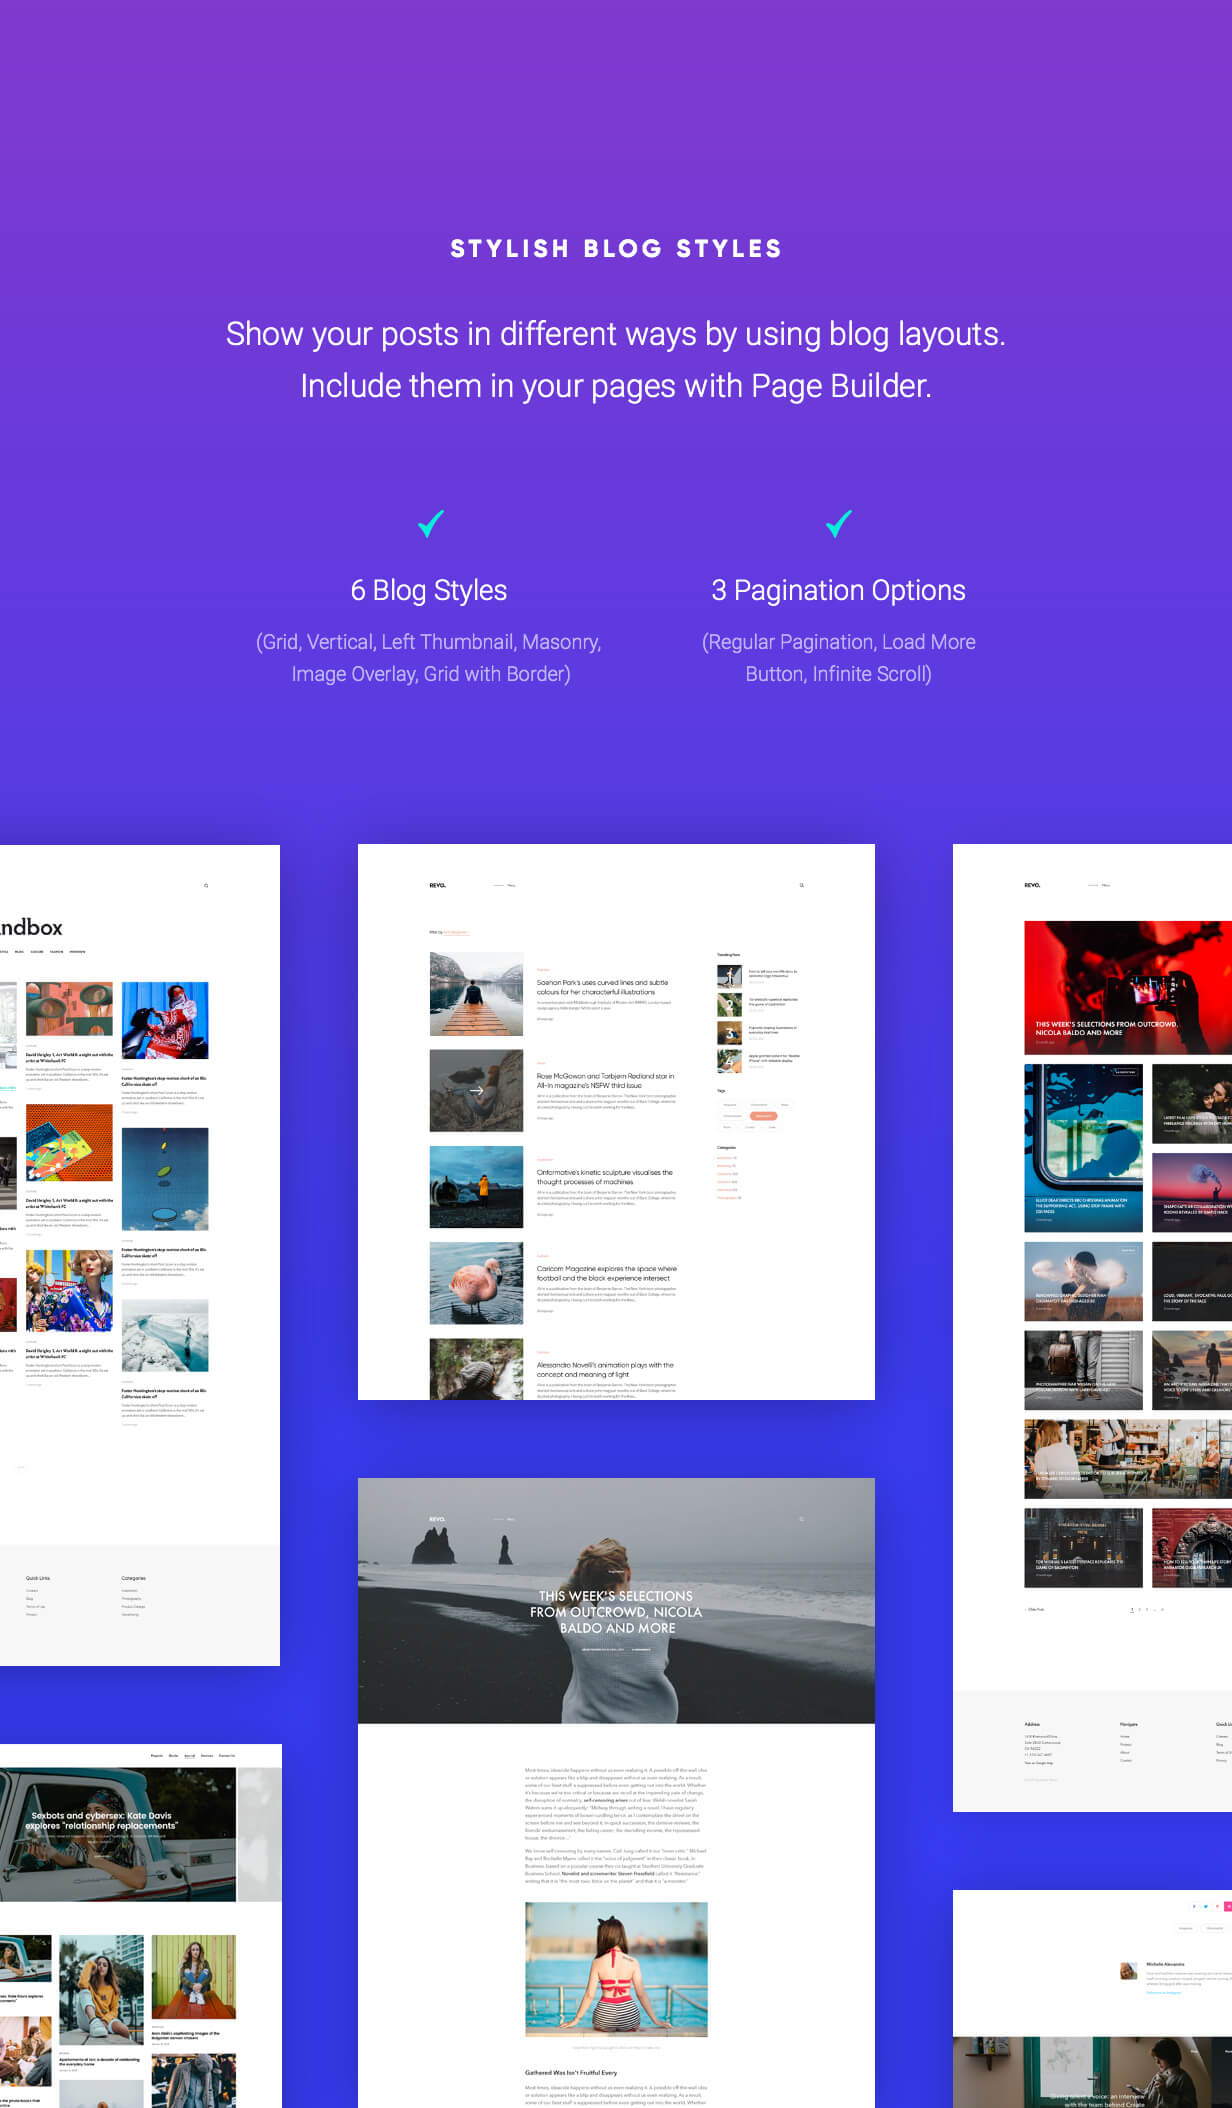 Themeforest | Revolution - Creative Multipurpose WordPress Theme Free Download #1 free download Themeforest | Revolution - Creative Multipurpose WordPress Theme Free Download #1 nulled Themeforest | Revolution - Creative Multipurpose WordPress Theme Free Download #1